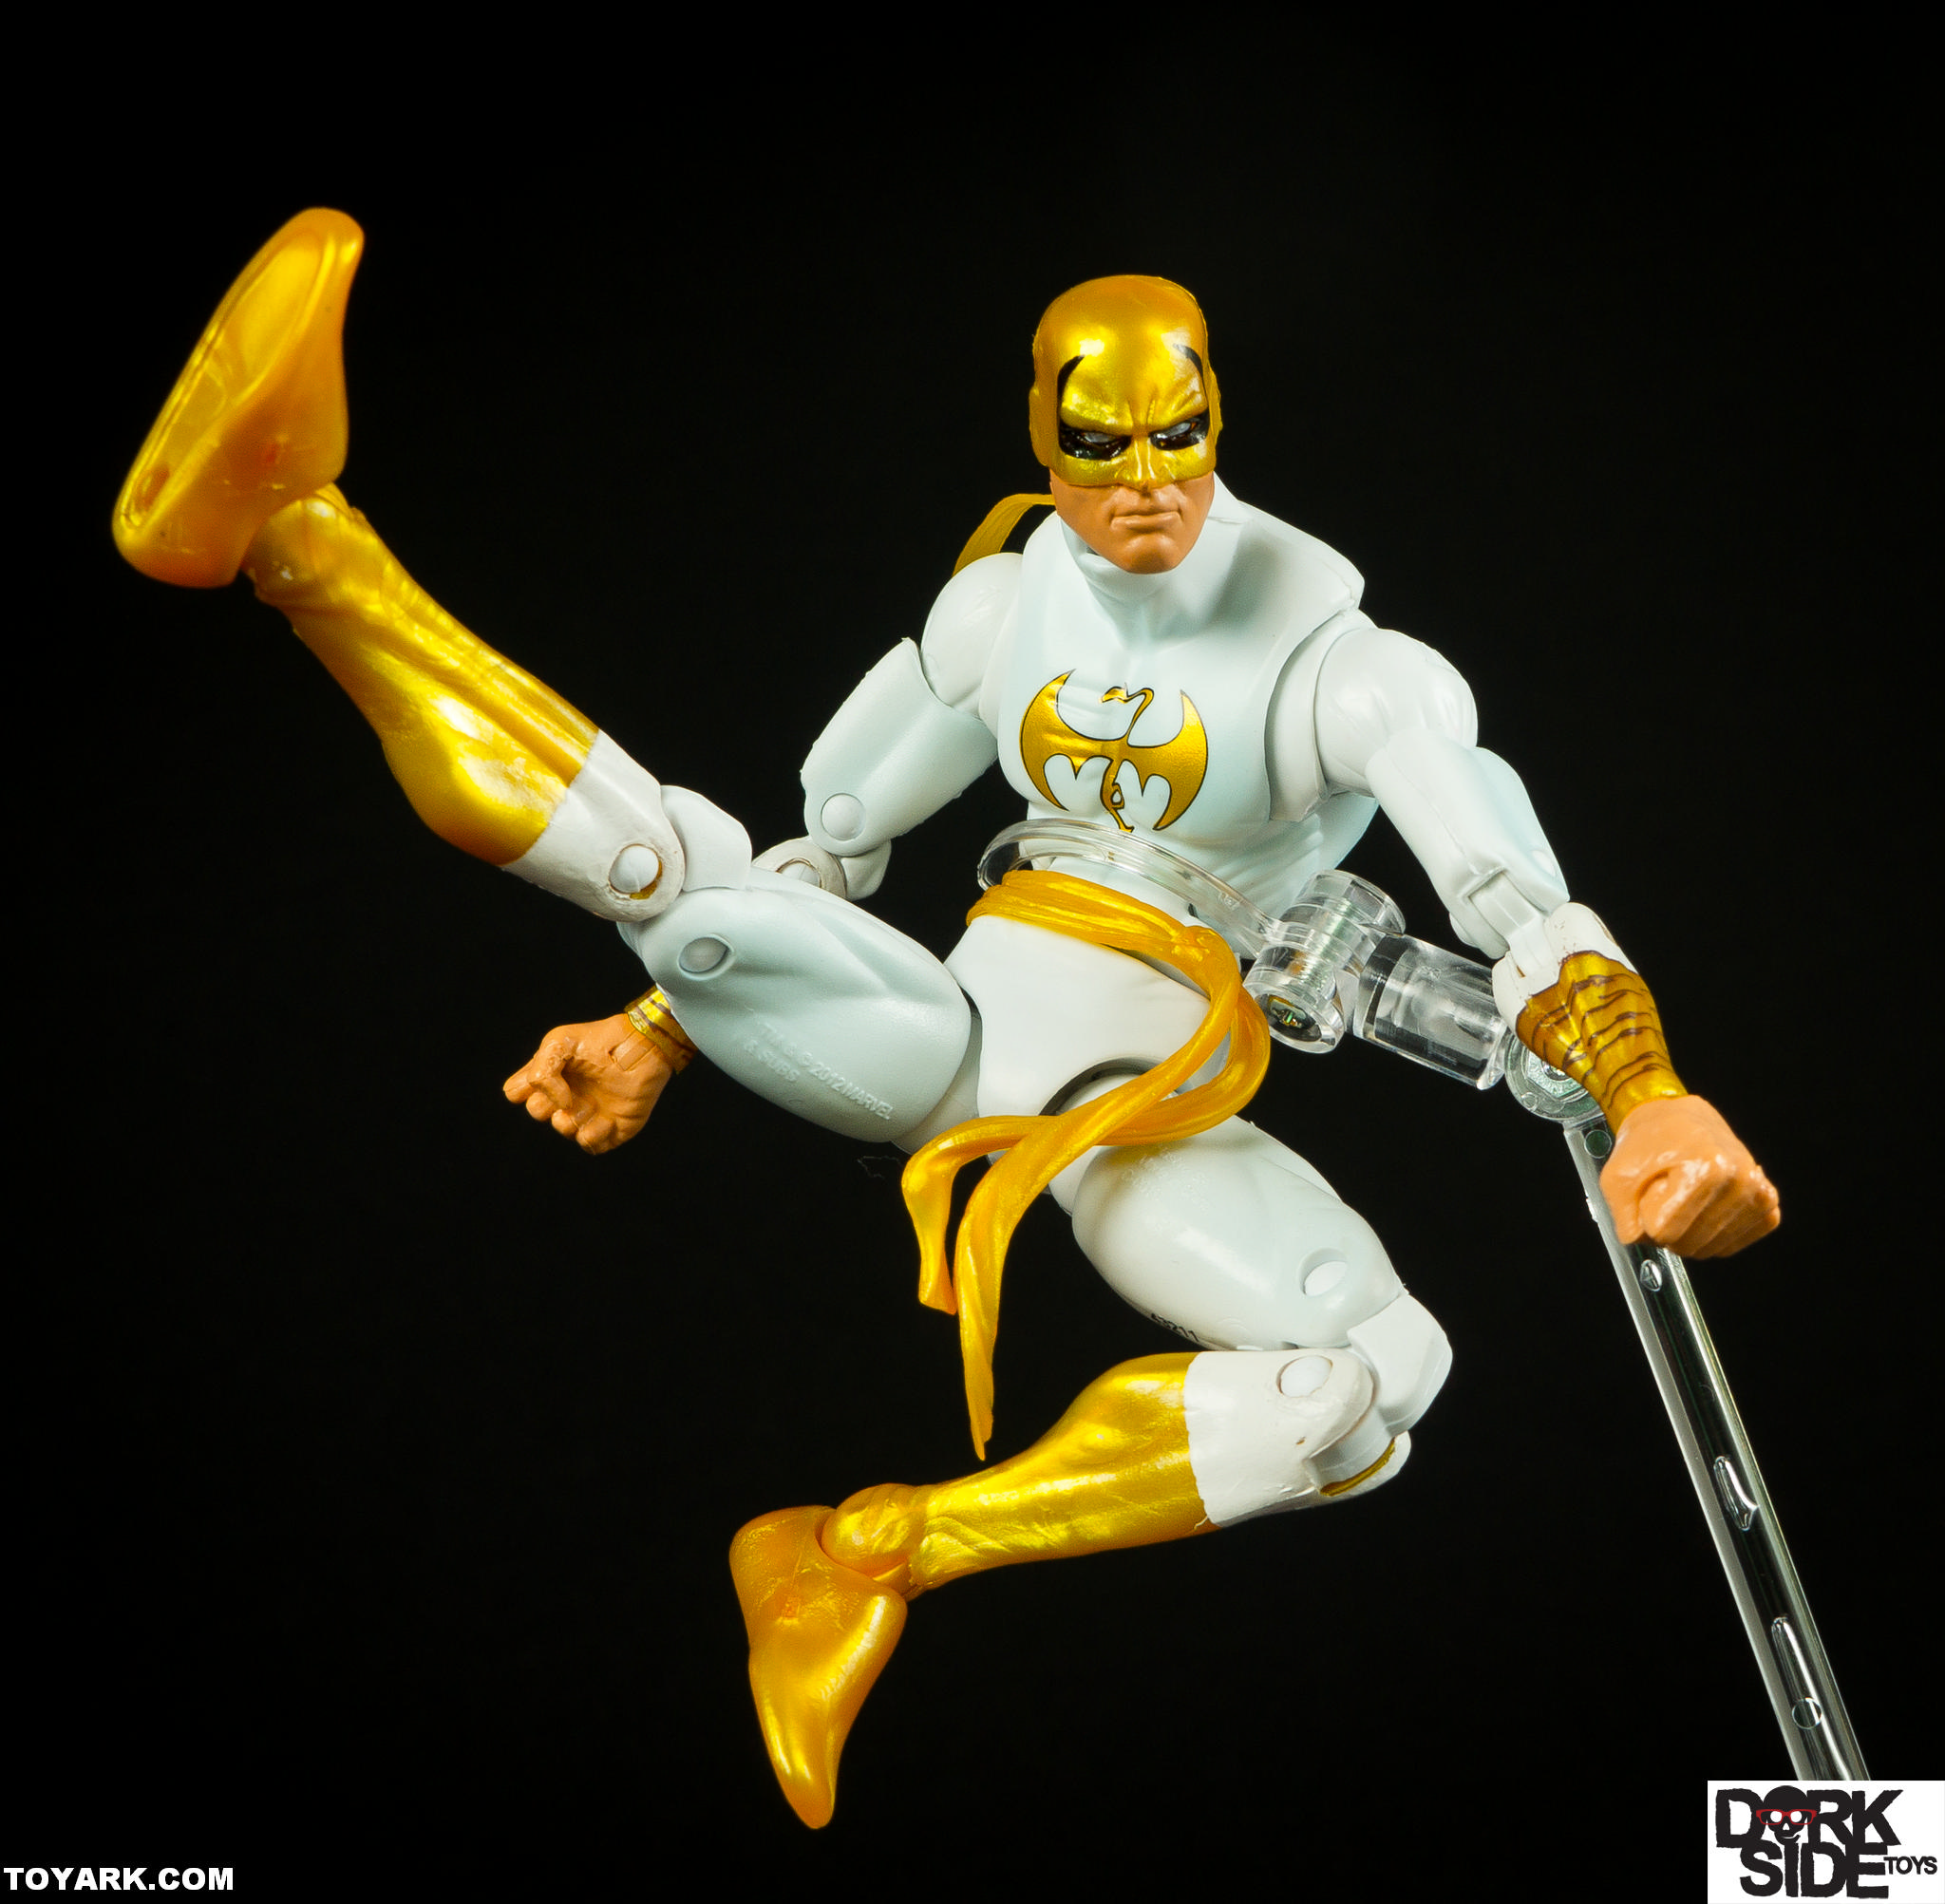 Marvel Legends Iron Fist Allfather Wave Photo Shoot The